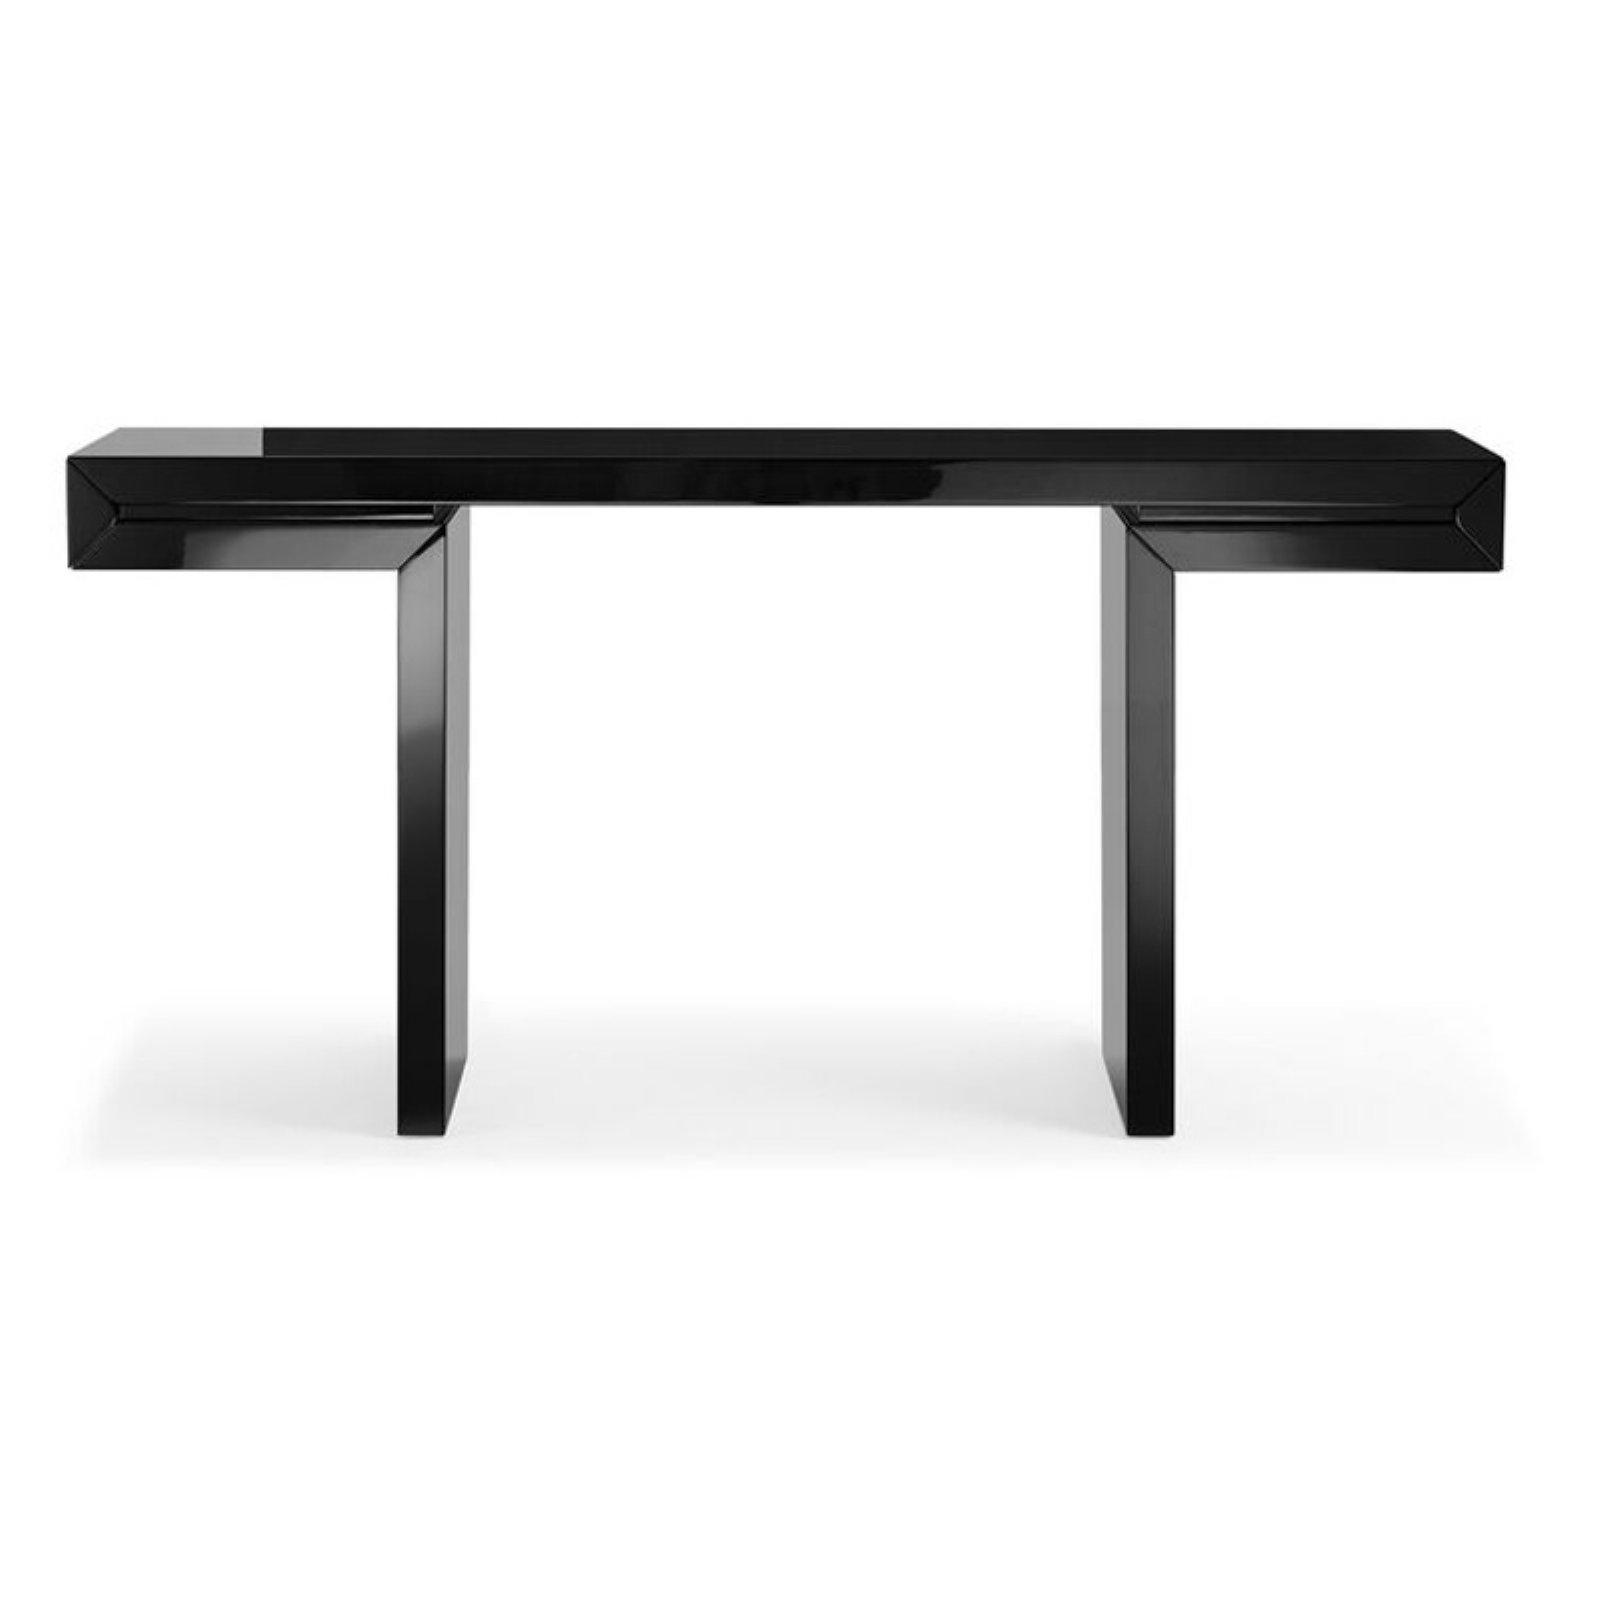 Whiteline Modern Living Delaney Console by White Line Imports